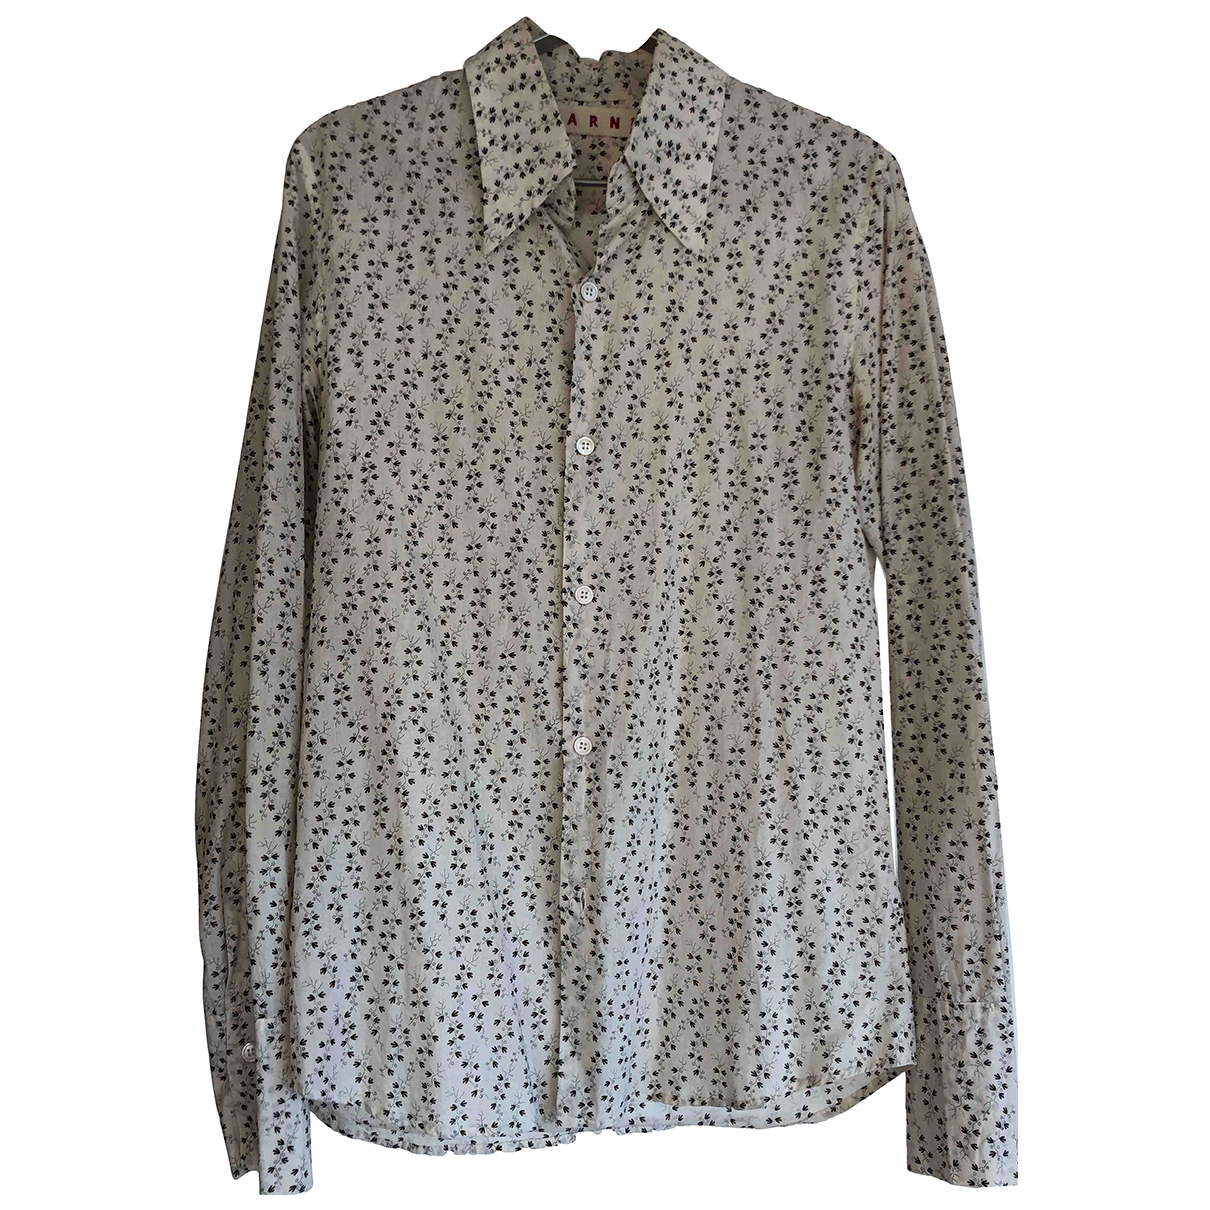 Marni \N Beige Cotton Shirts for Men S International